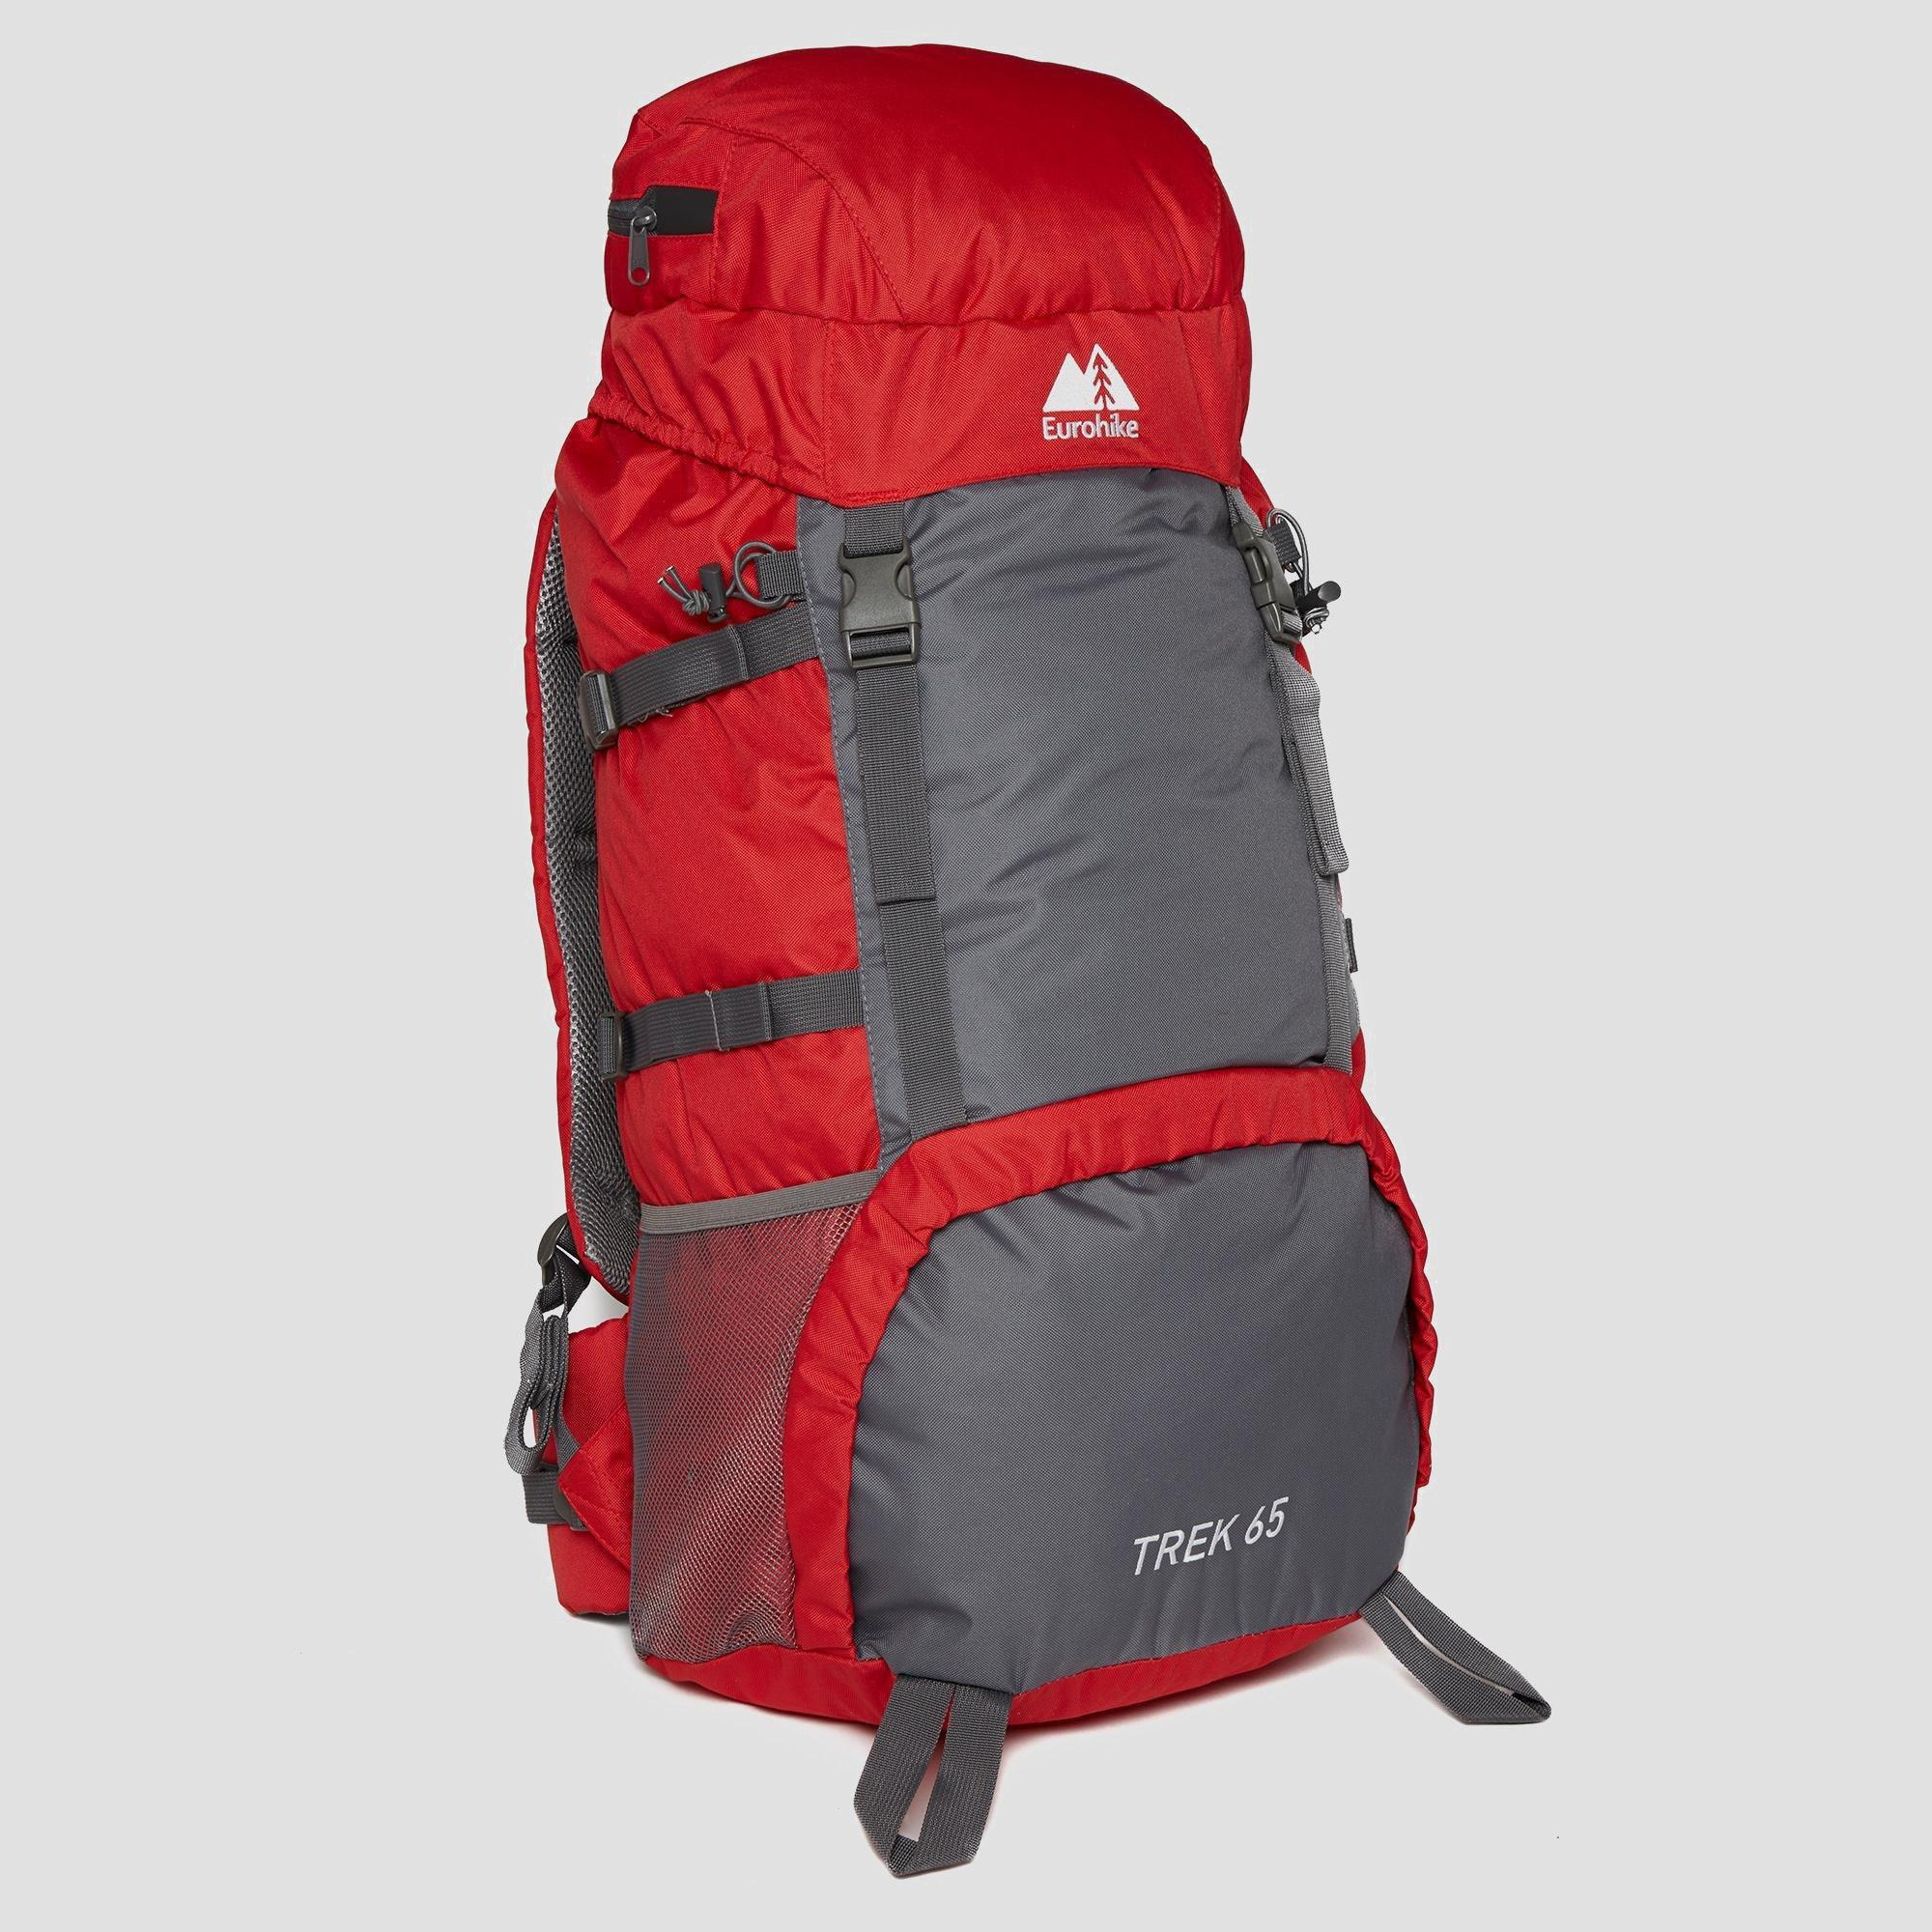 Eurohike Trek 65L Backpack - Red, Red